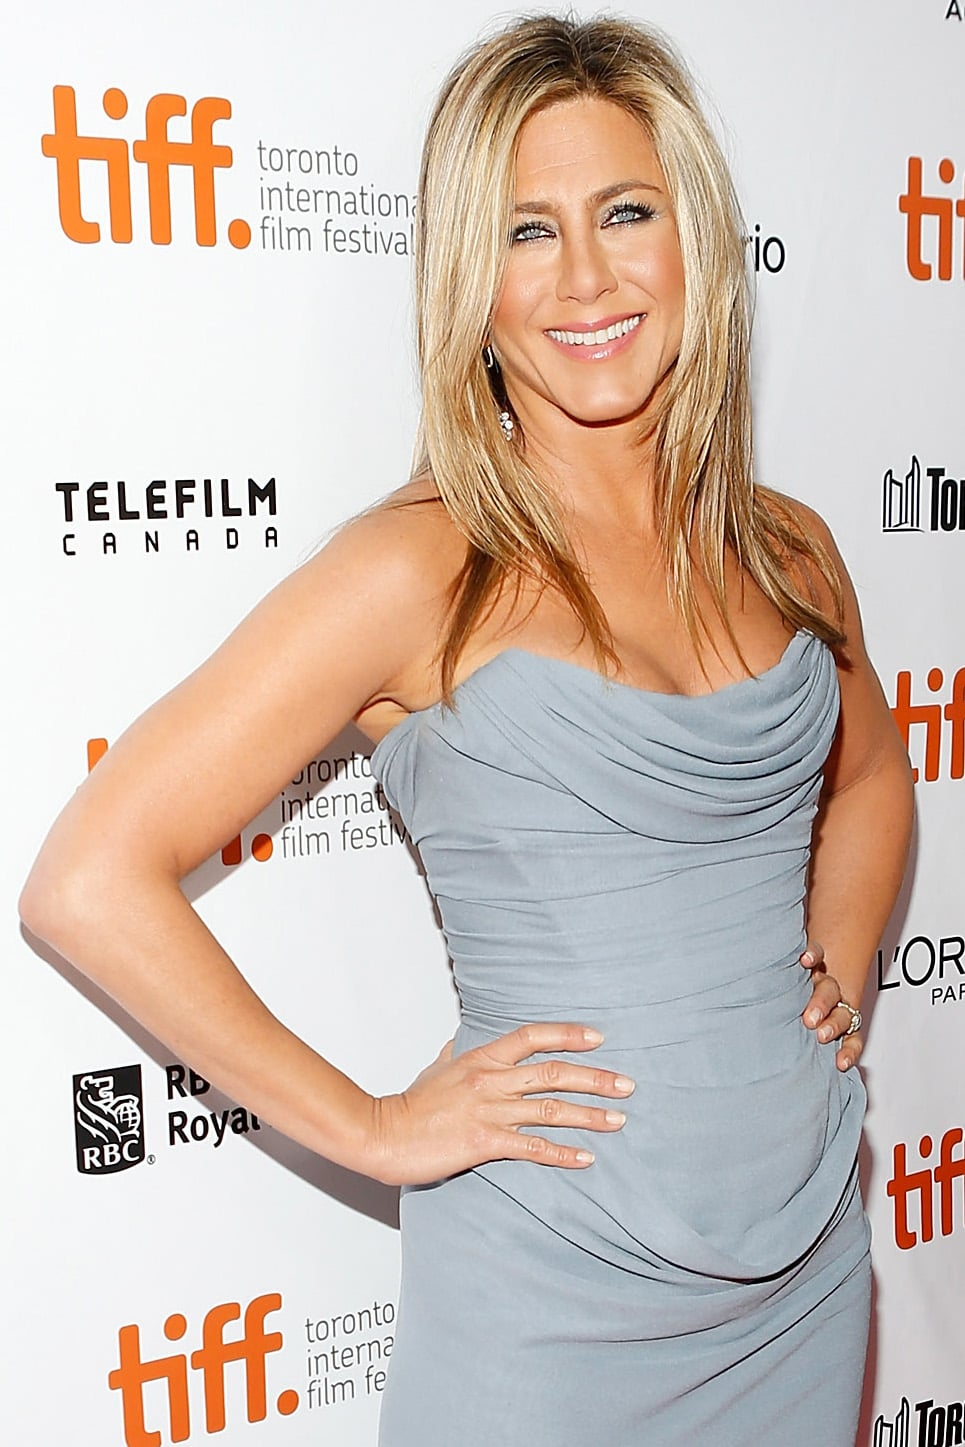 Jennifer Aniston will star in Cake, an indie about a woman who becomes fascinated with the suicide of another woman in her chronic-pain group.